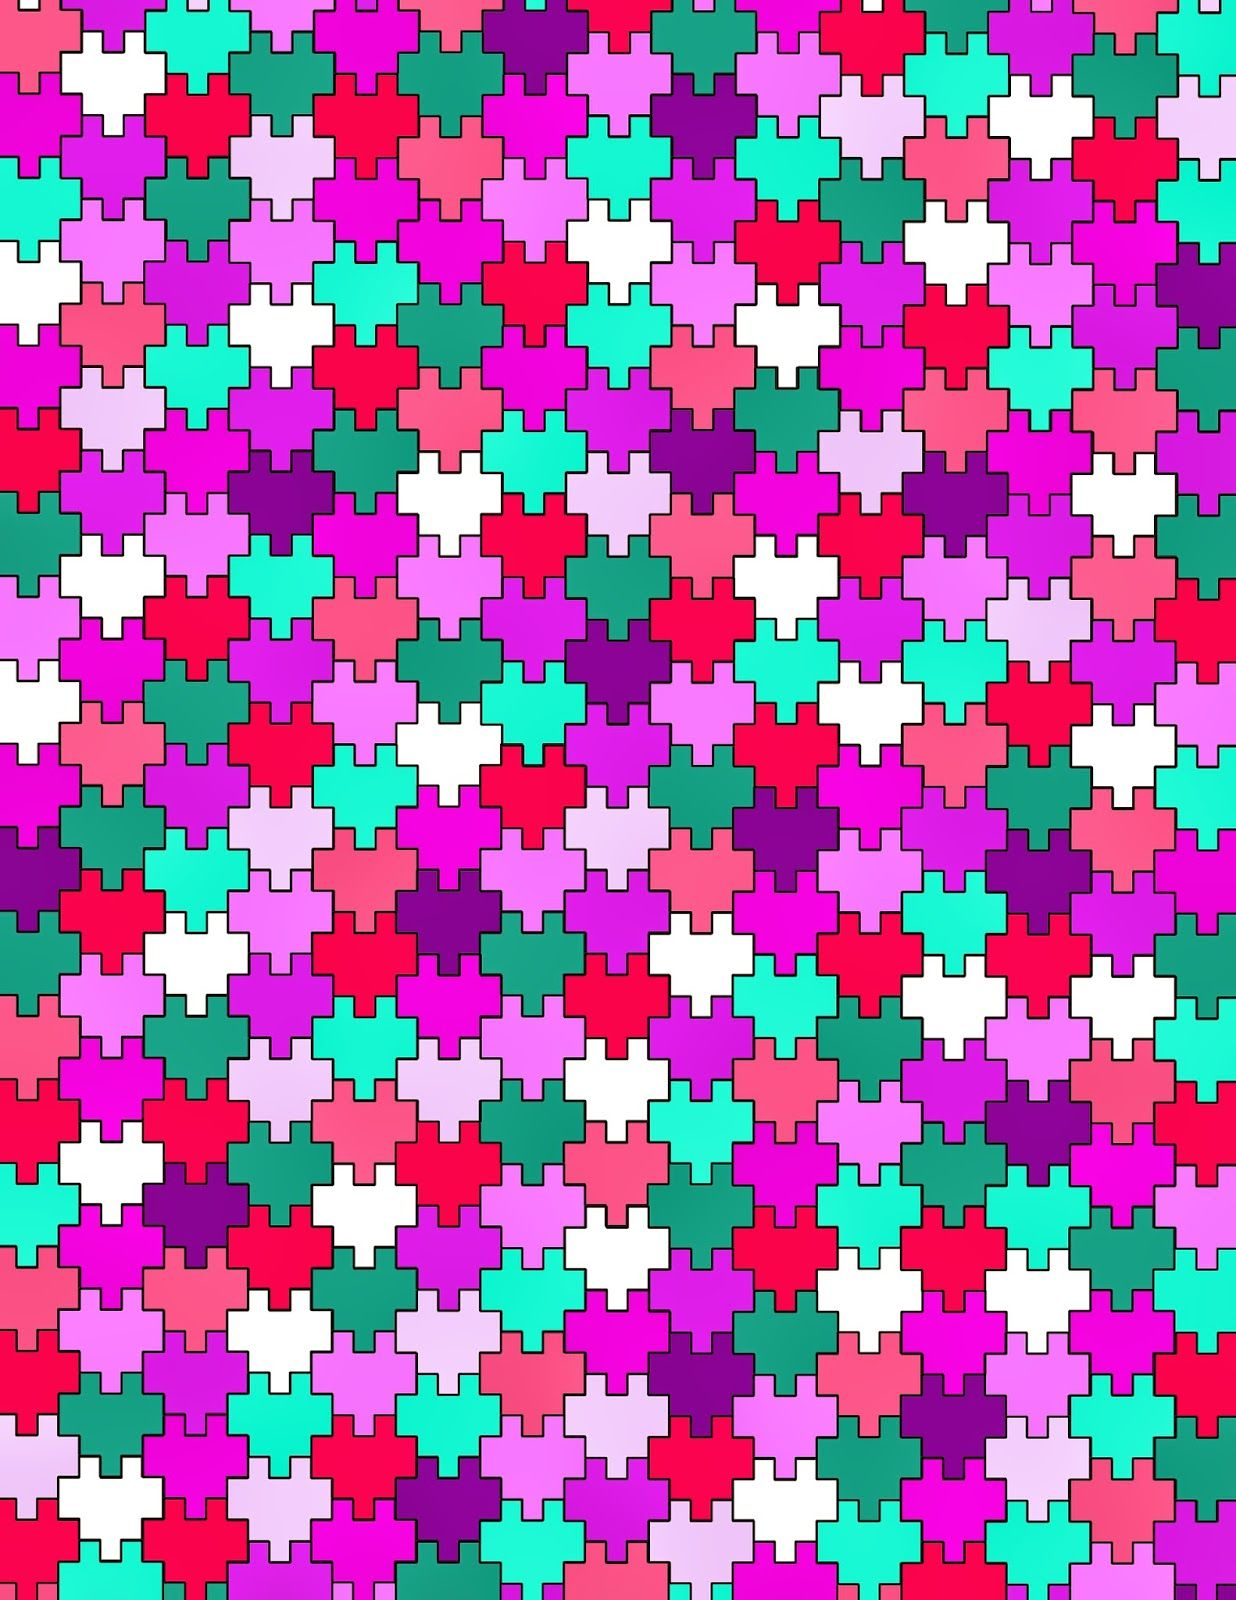 Minecraft Pixel Heart Tessellation Free Printable! | Anime/Manga ...